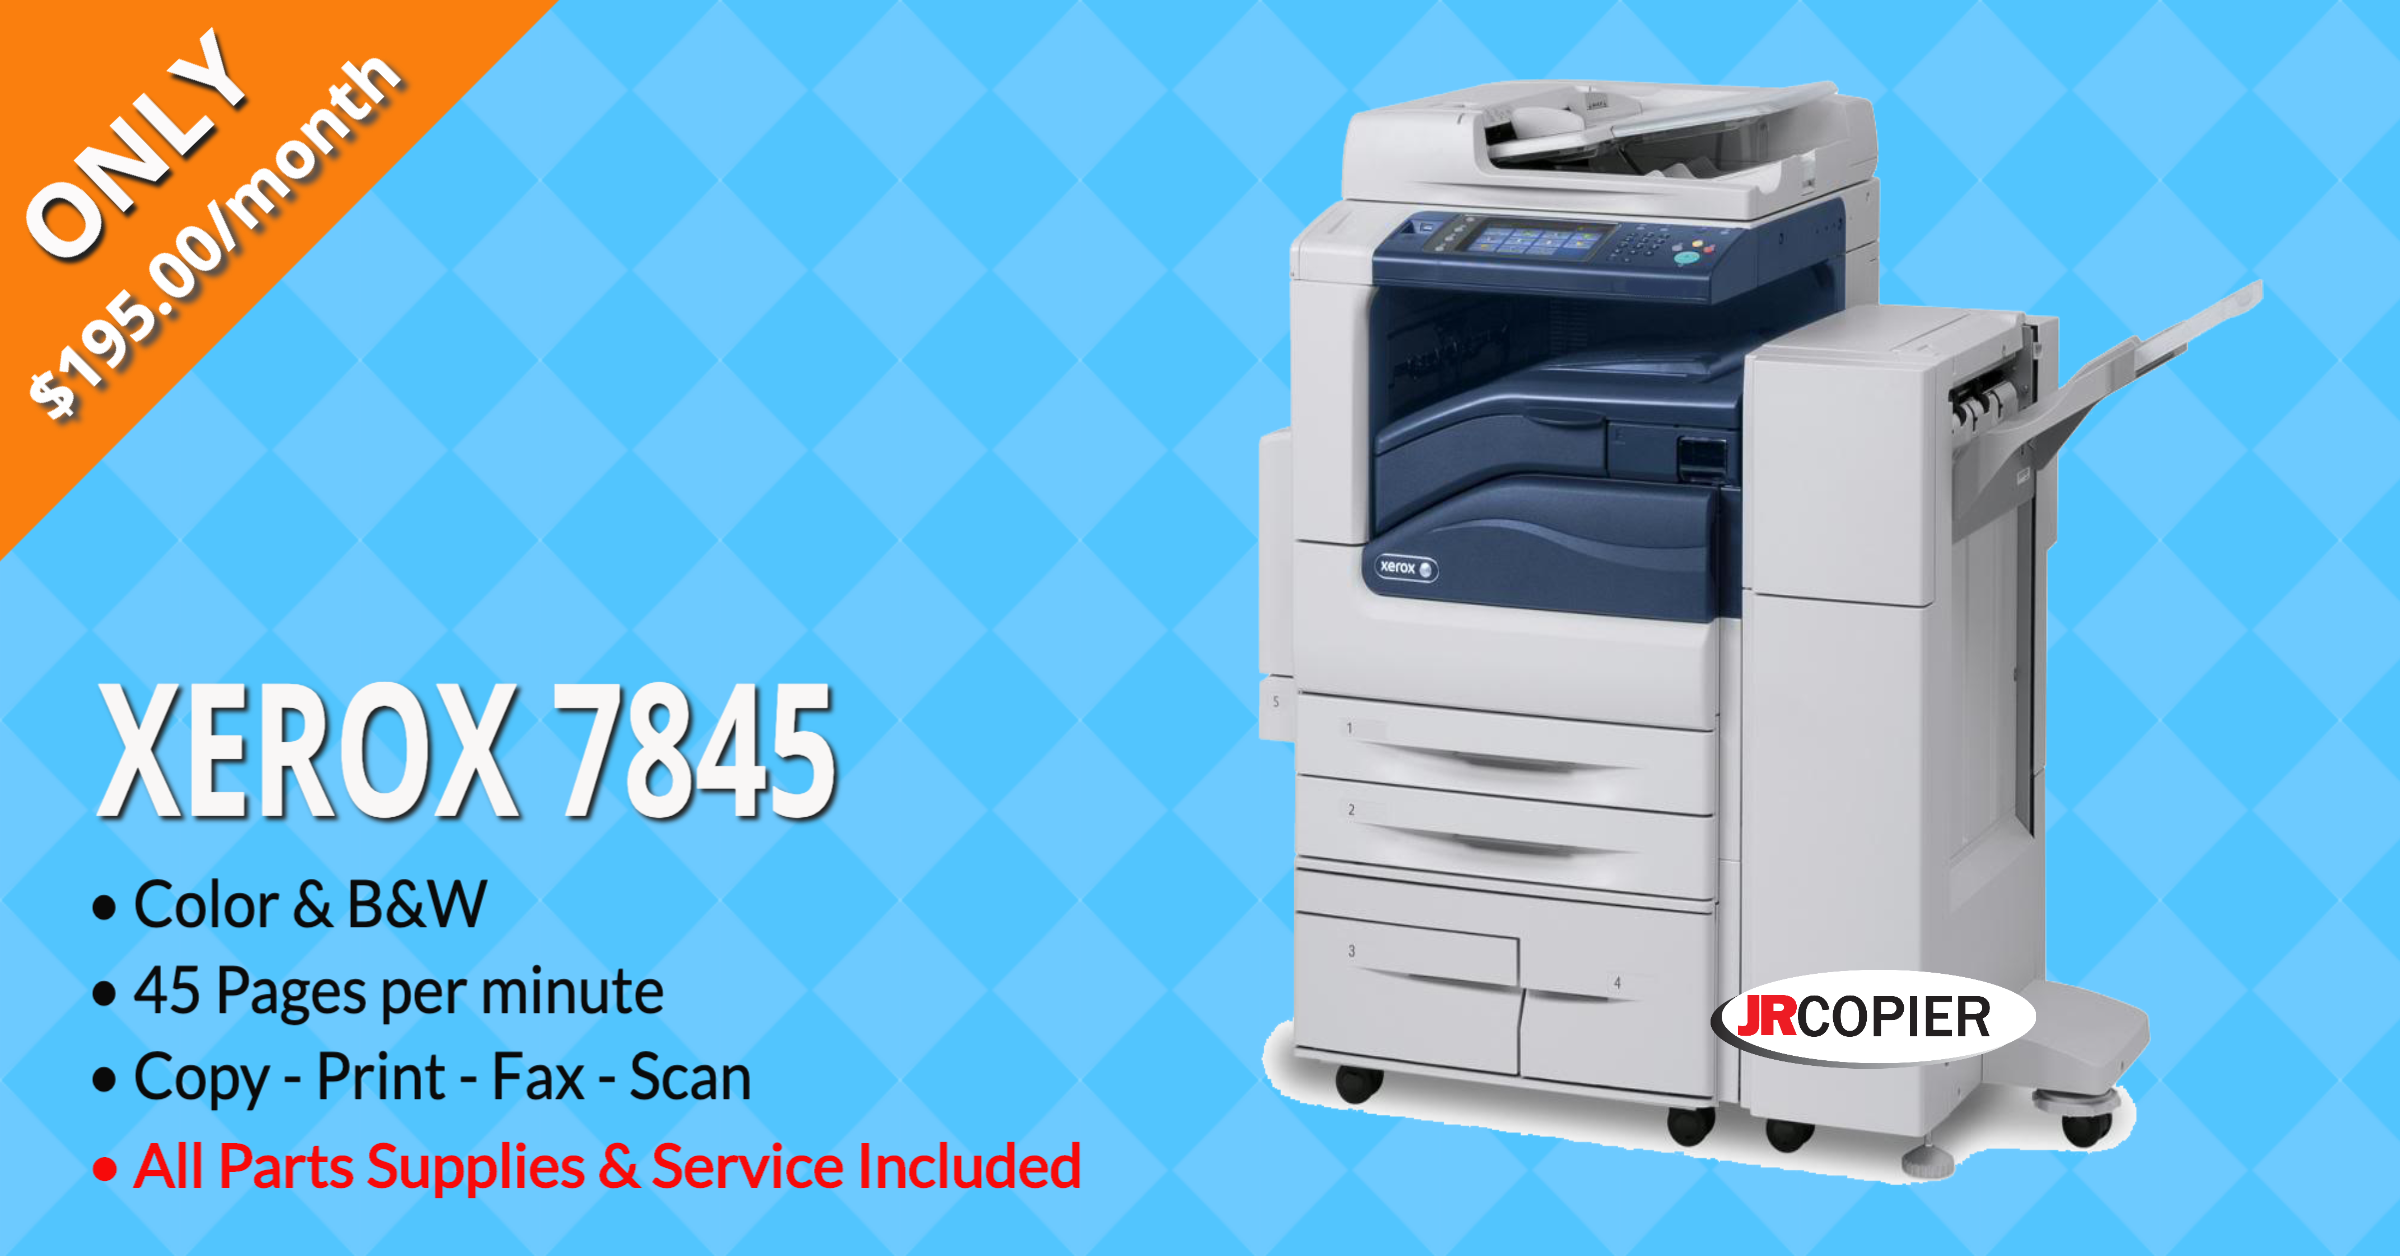 Printer Leasing Company 32751, 32789, 32794, 32810